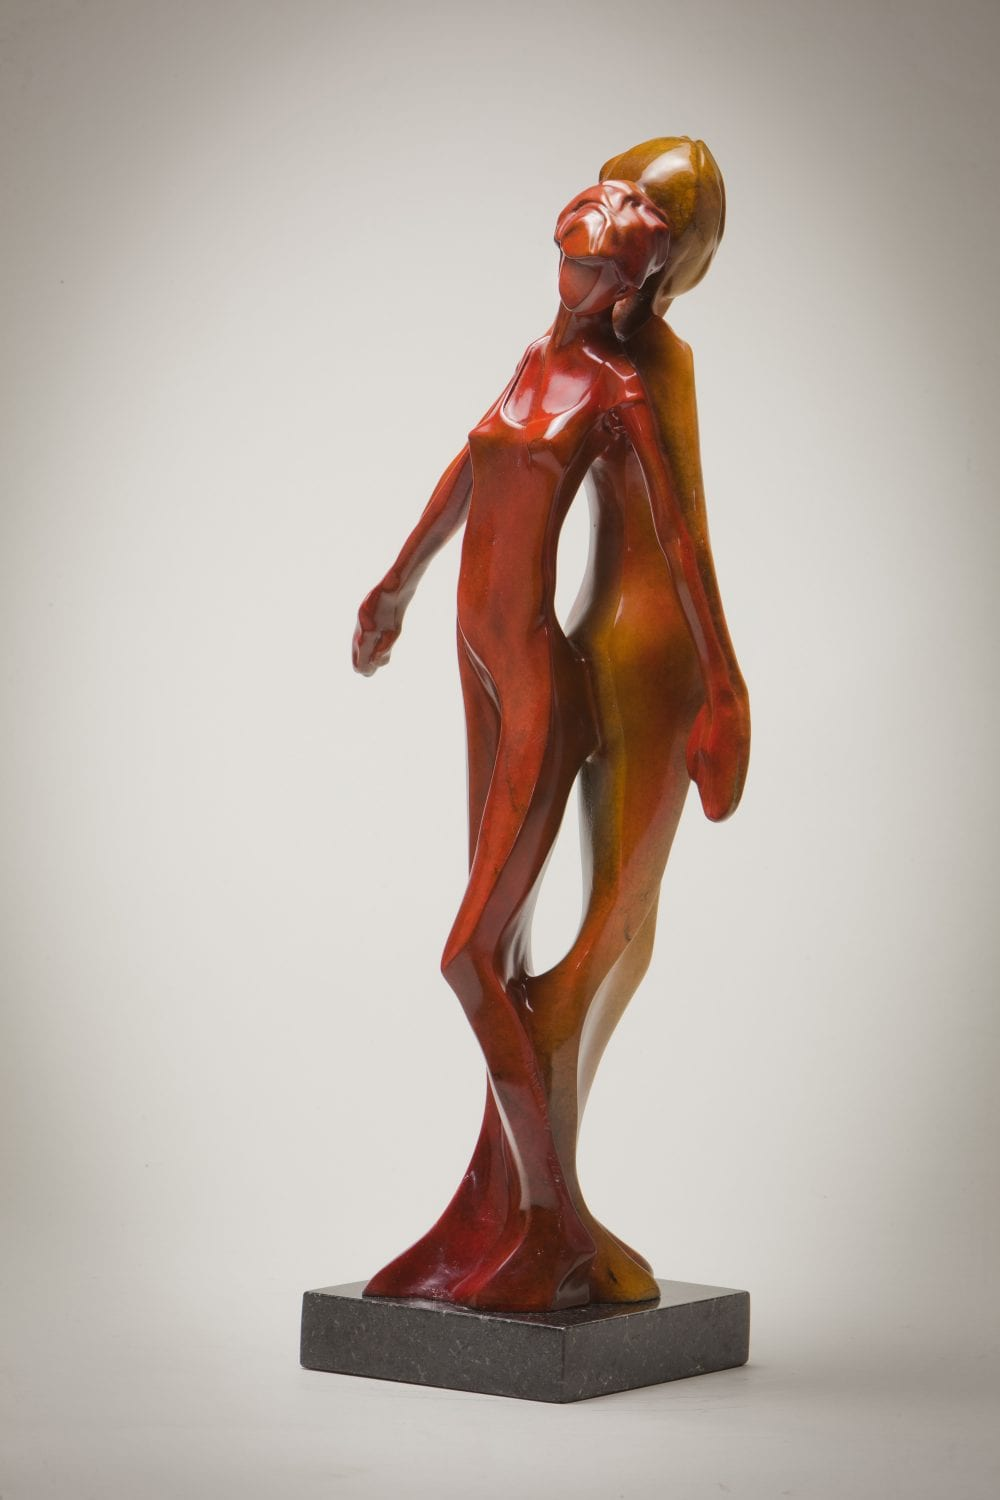 Lean On Me | Richard Pankratz | Sculpture-Exposures International Gallery of Fine Art - Sedona AZ